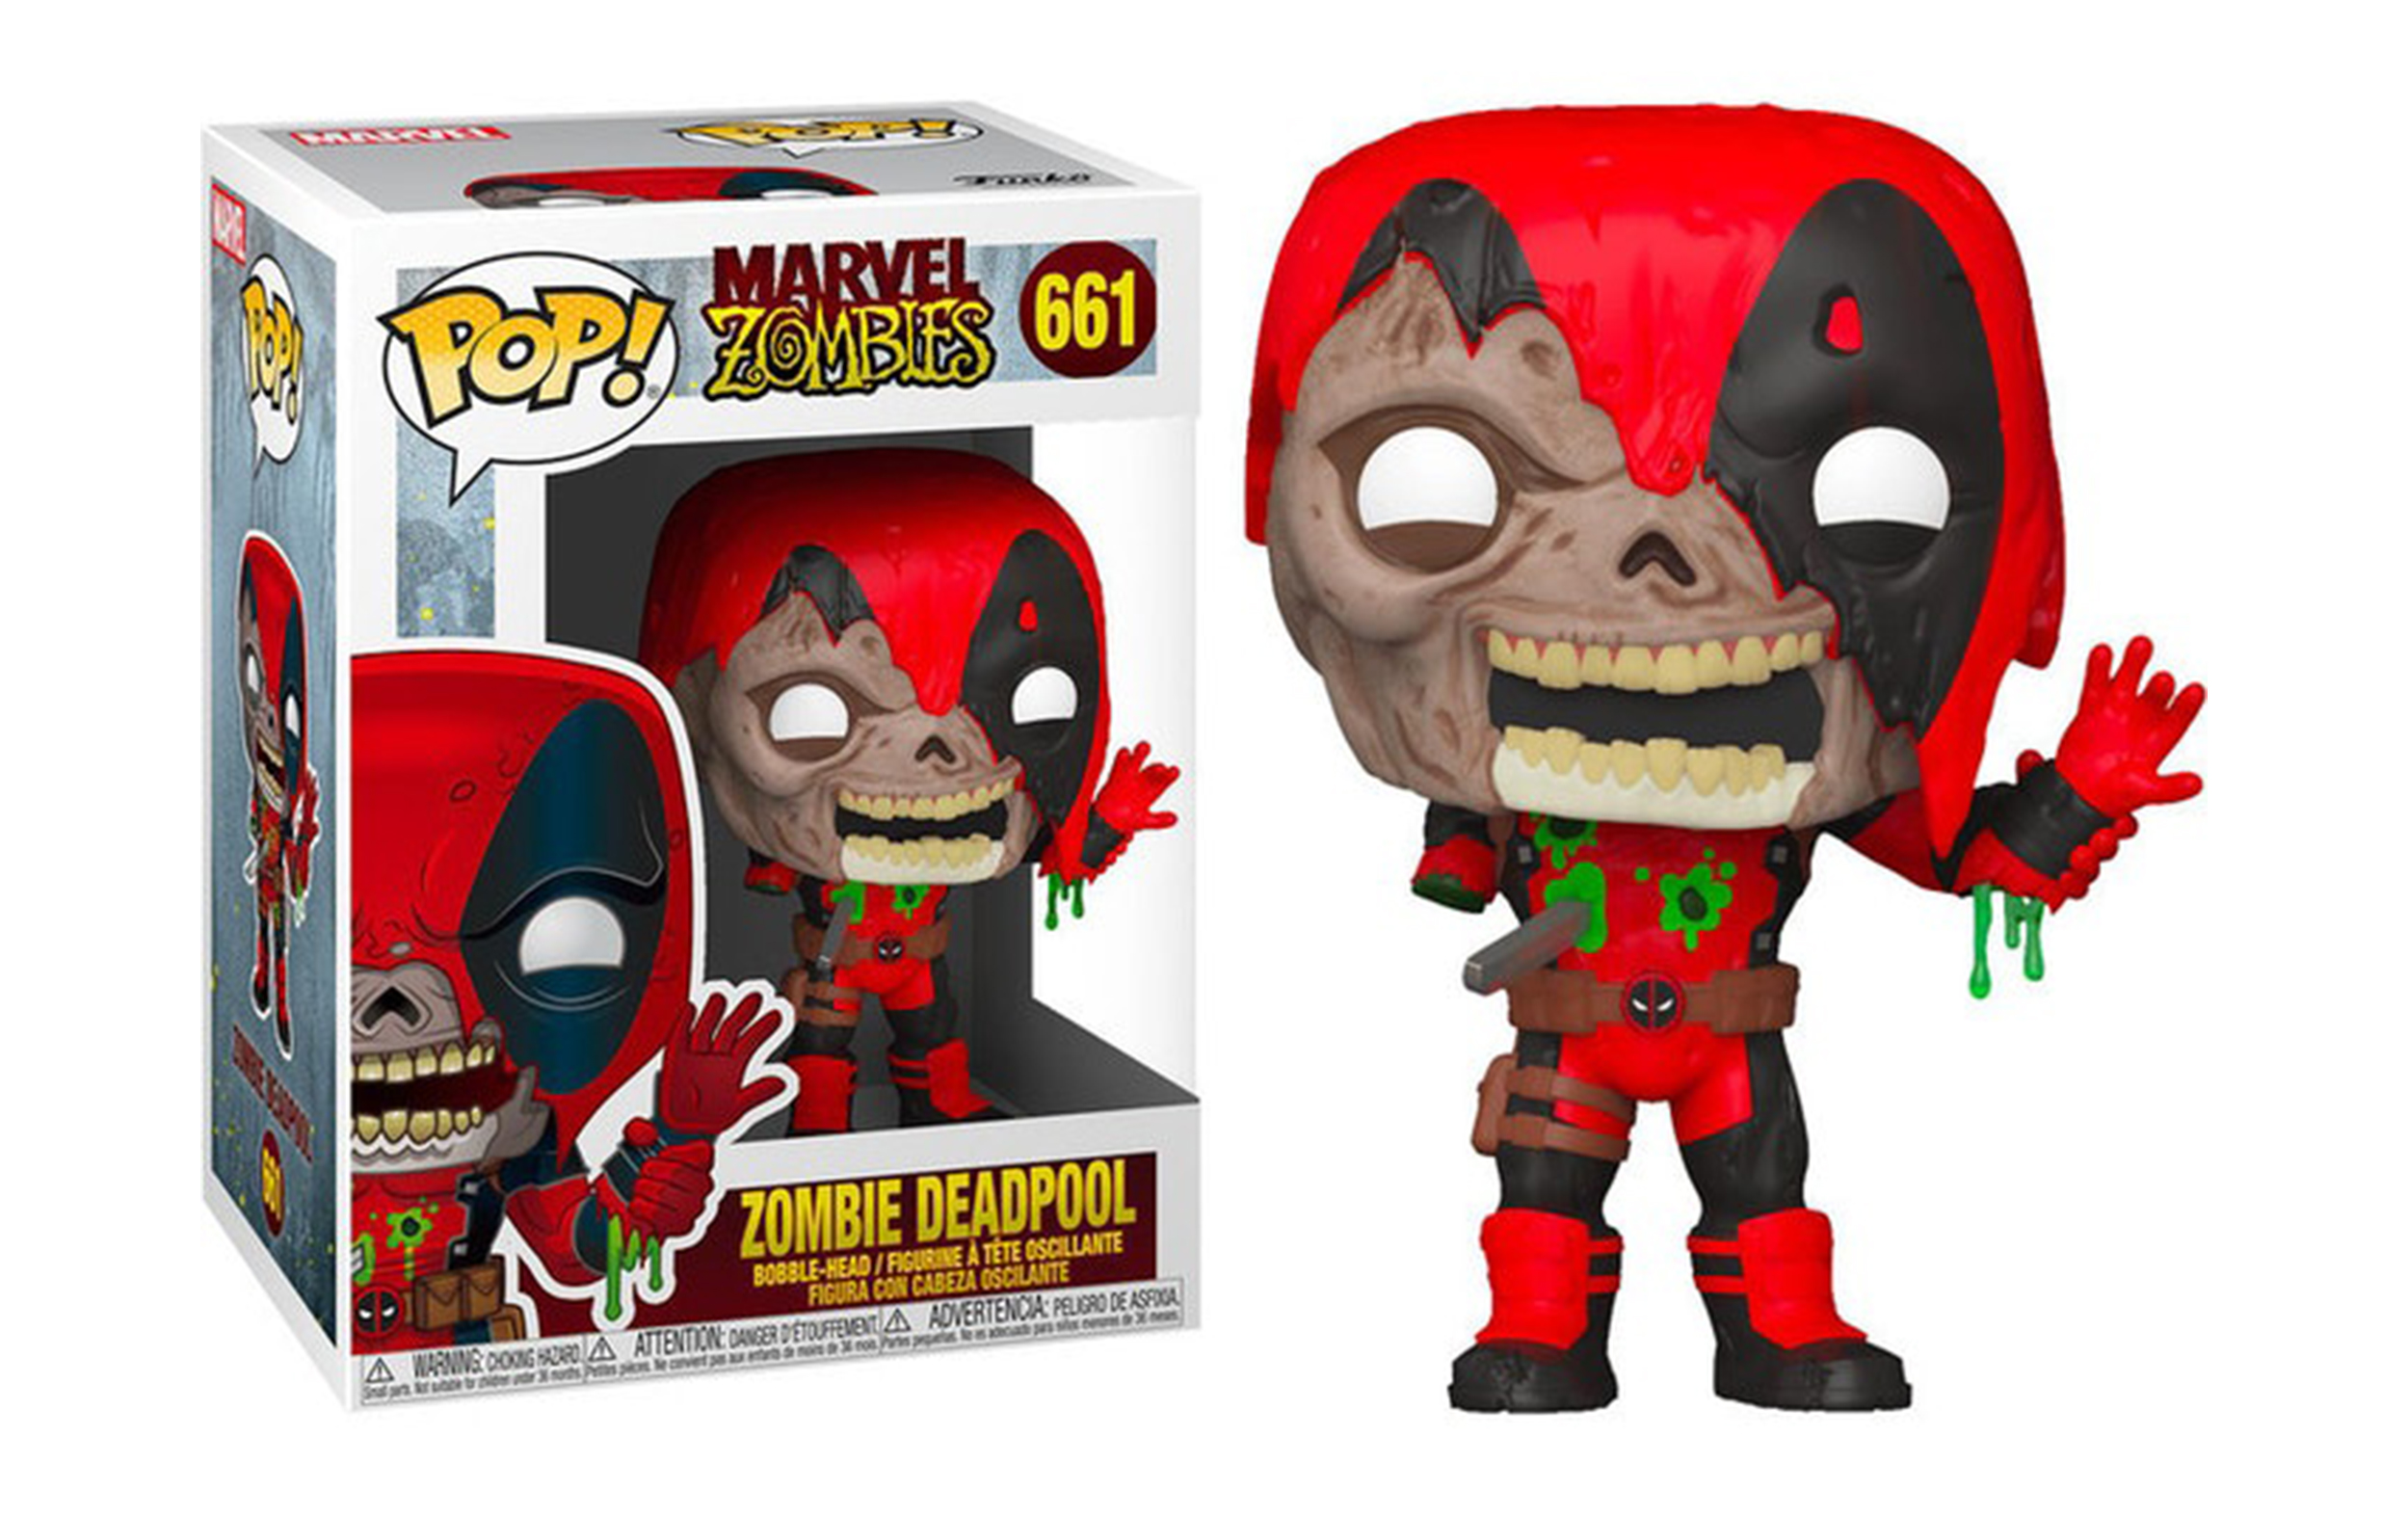 Marvel Zombies Zombie Deadpool 661 Funko POP Vinyl Figure